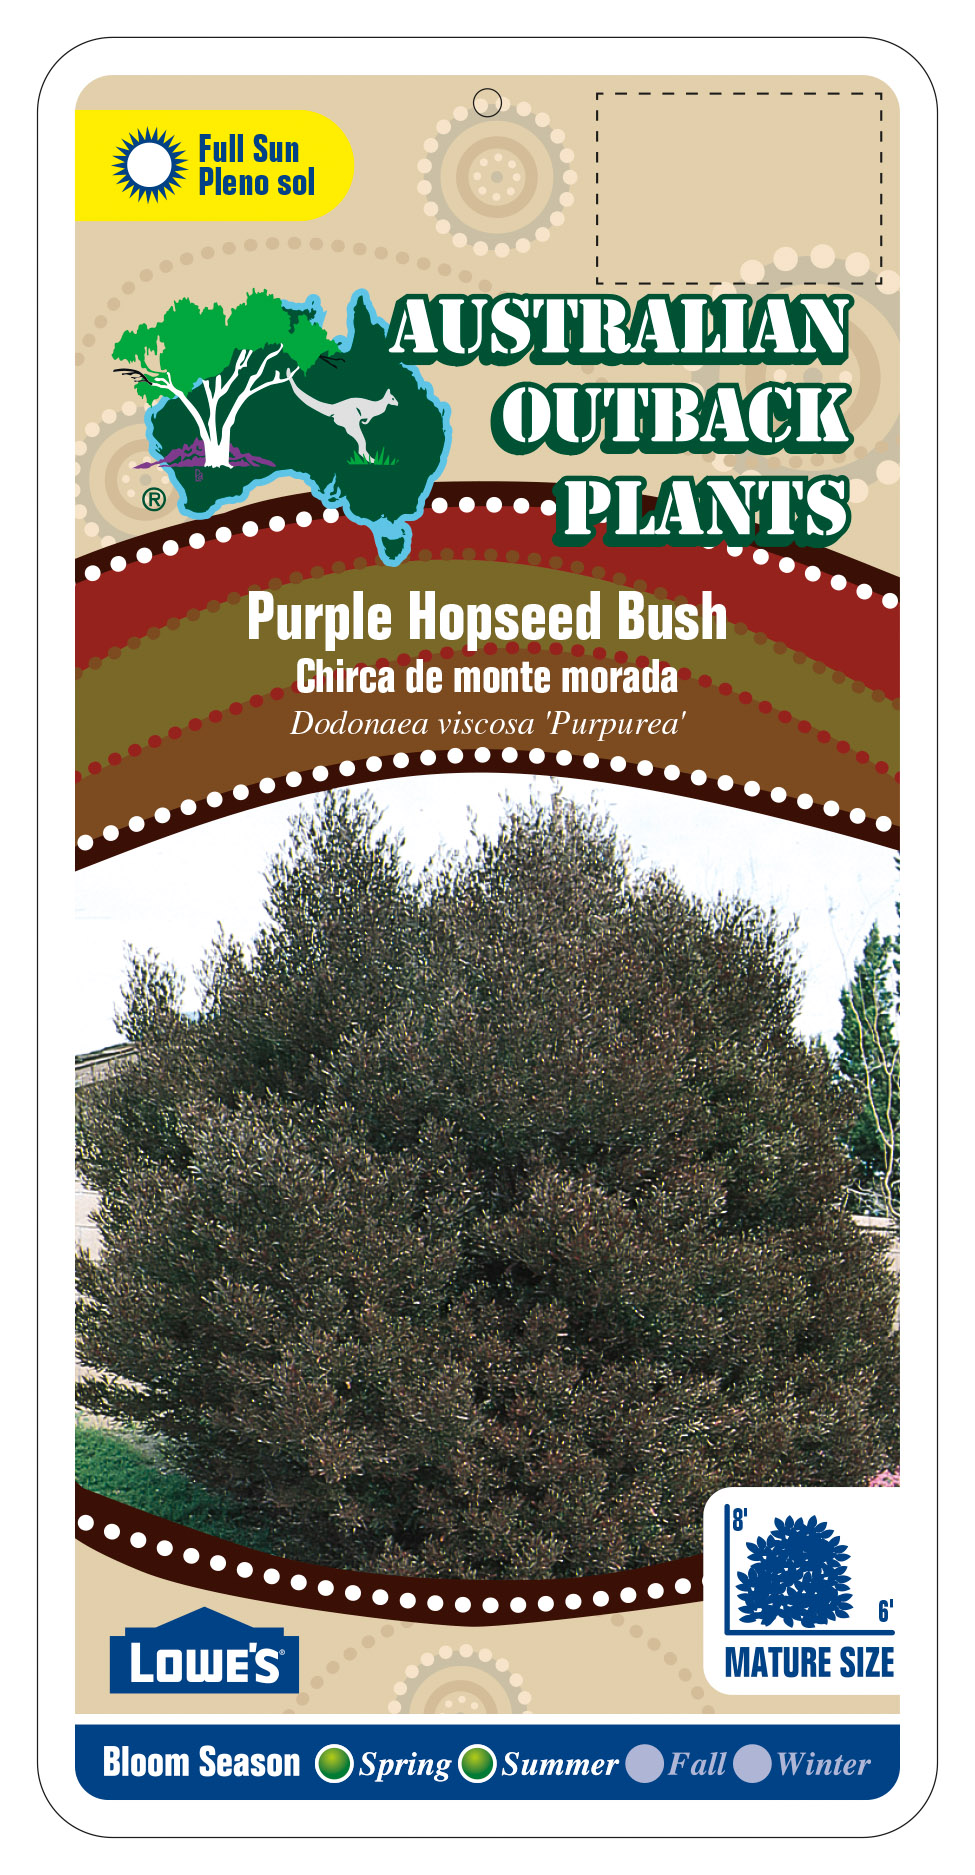 87332_FRONT-Purple-HopSeed-Bush.jpg